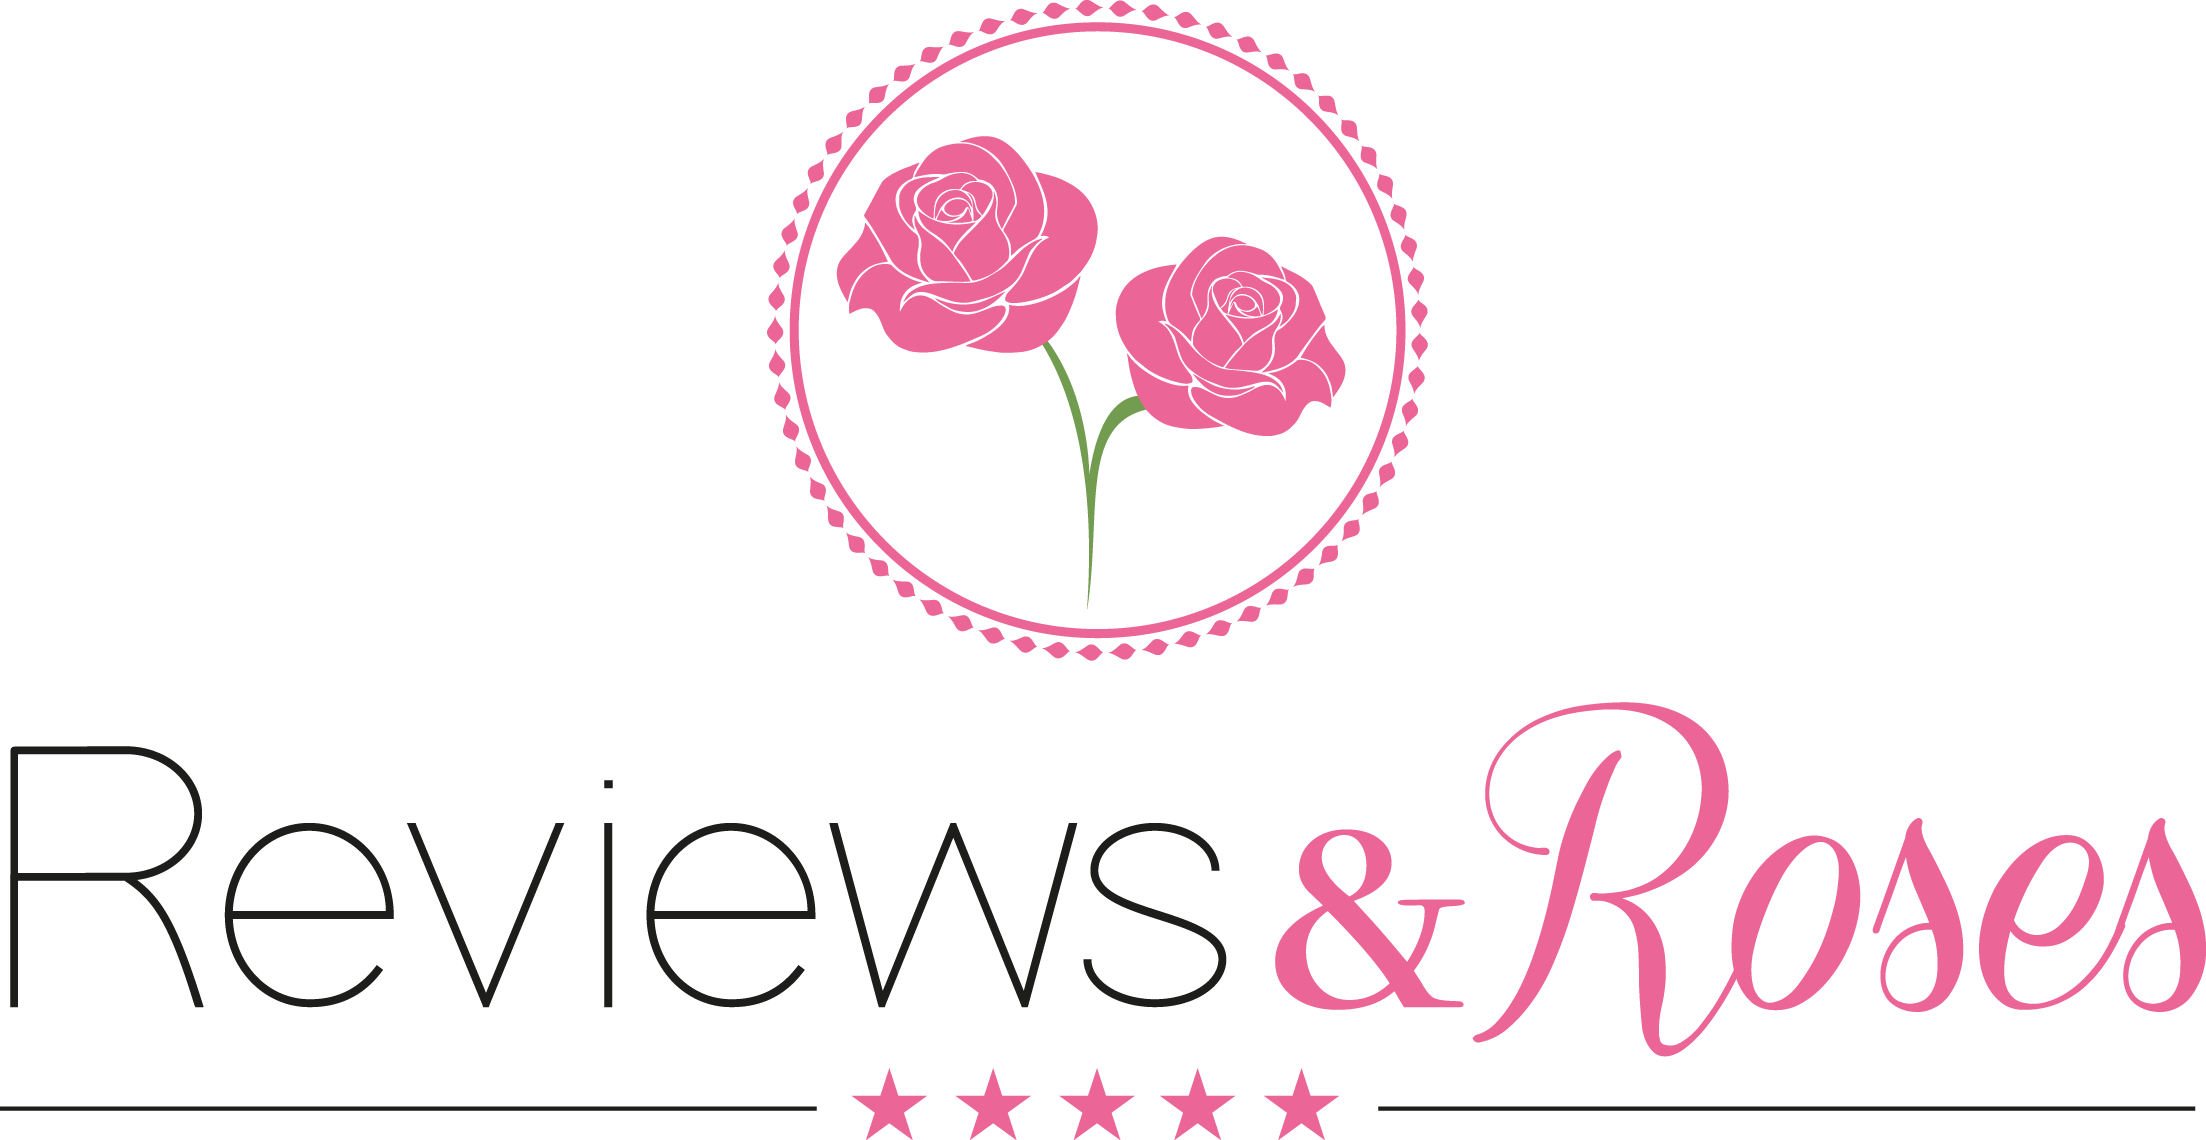 1-Reviews&Roses